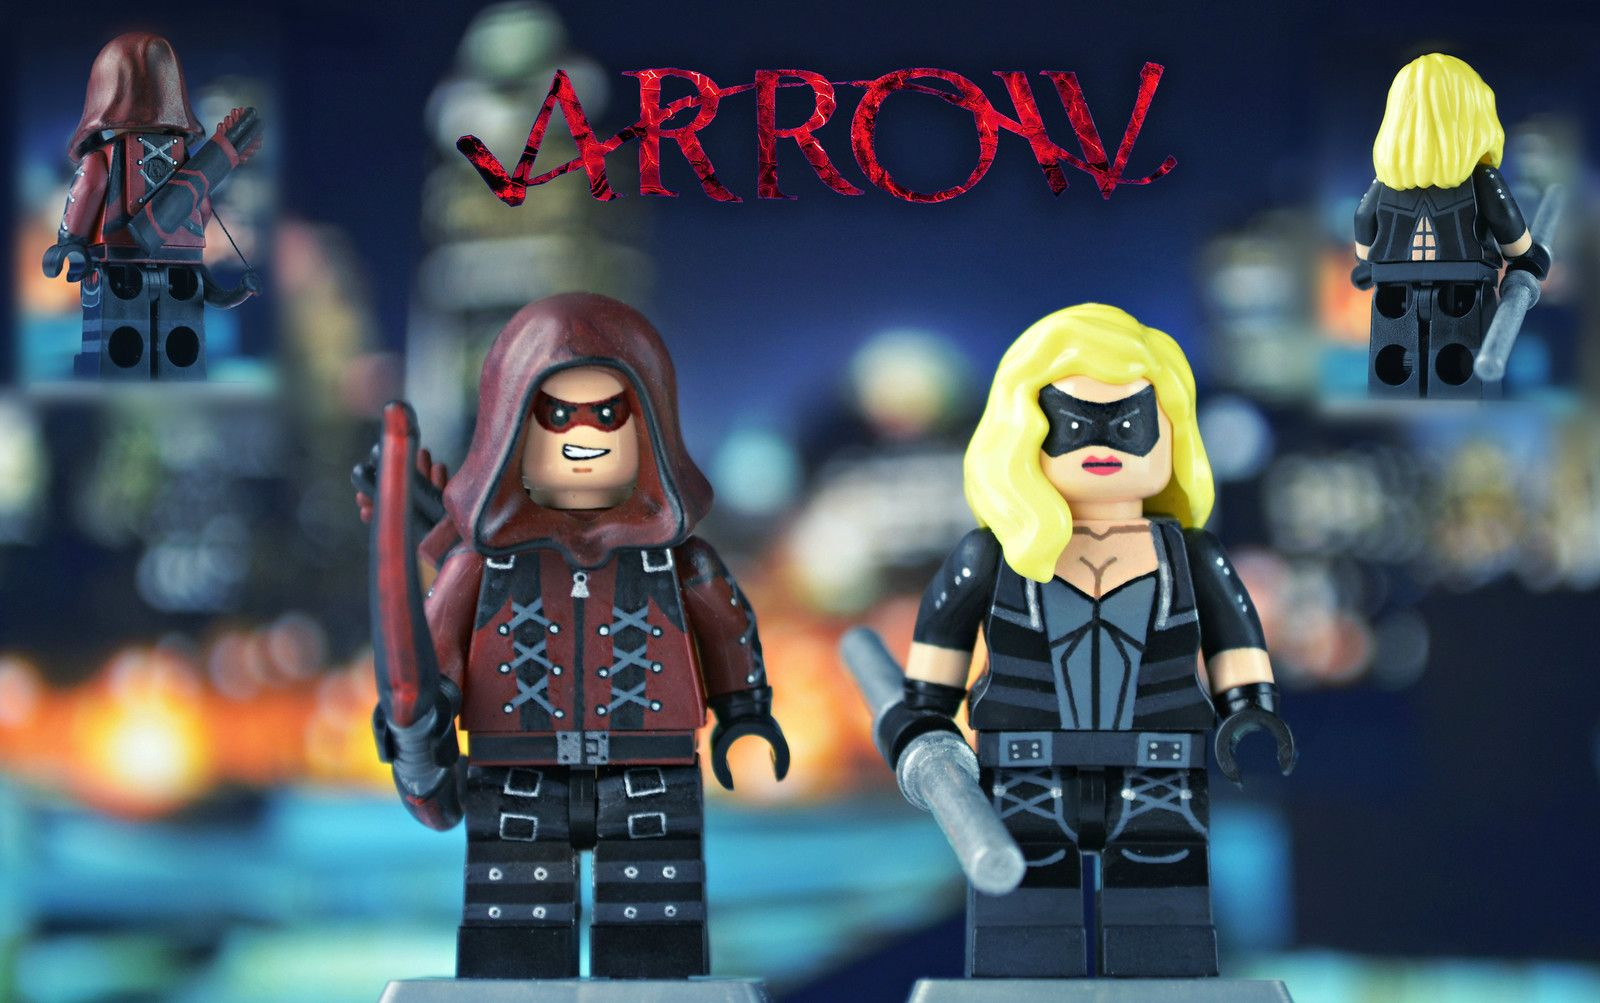 New Minifigure Custom Lego Black Canary New Version Character DC Comics Movie